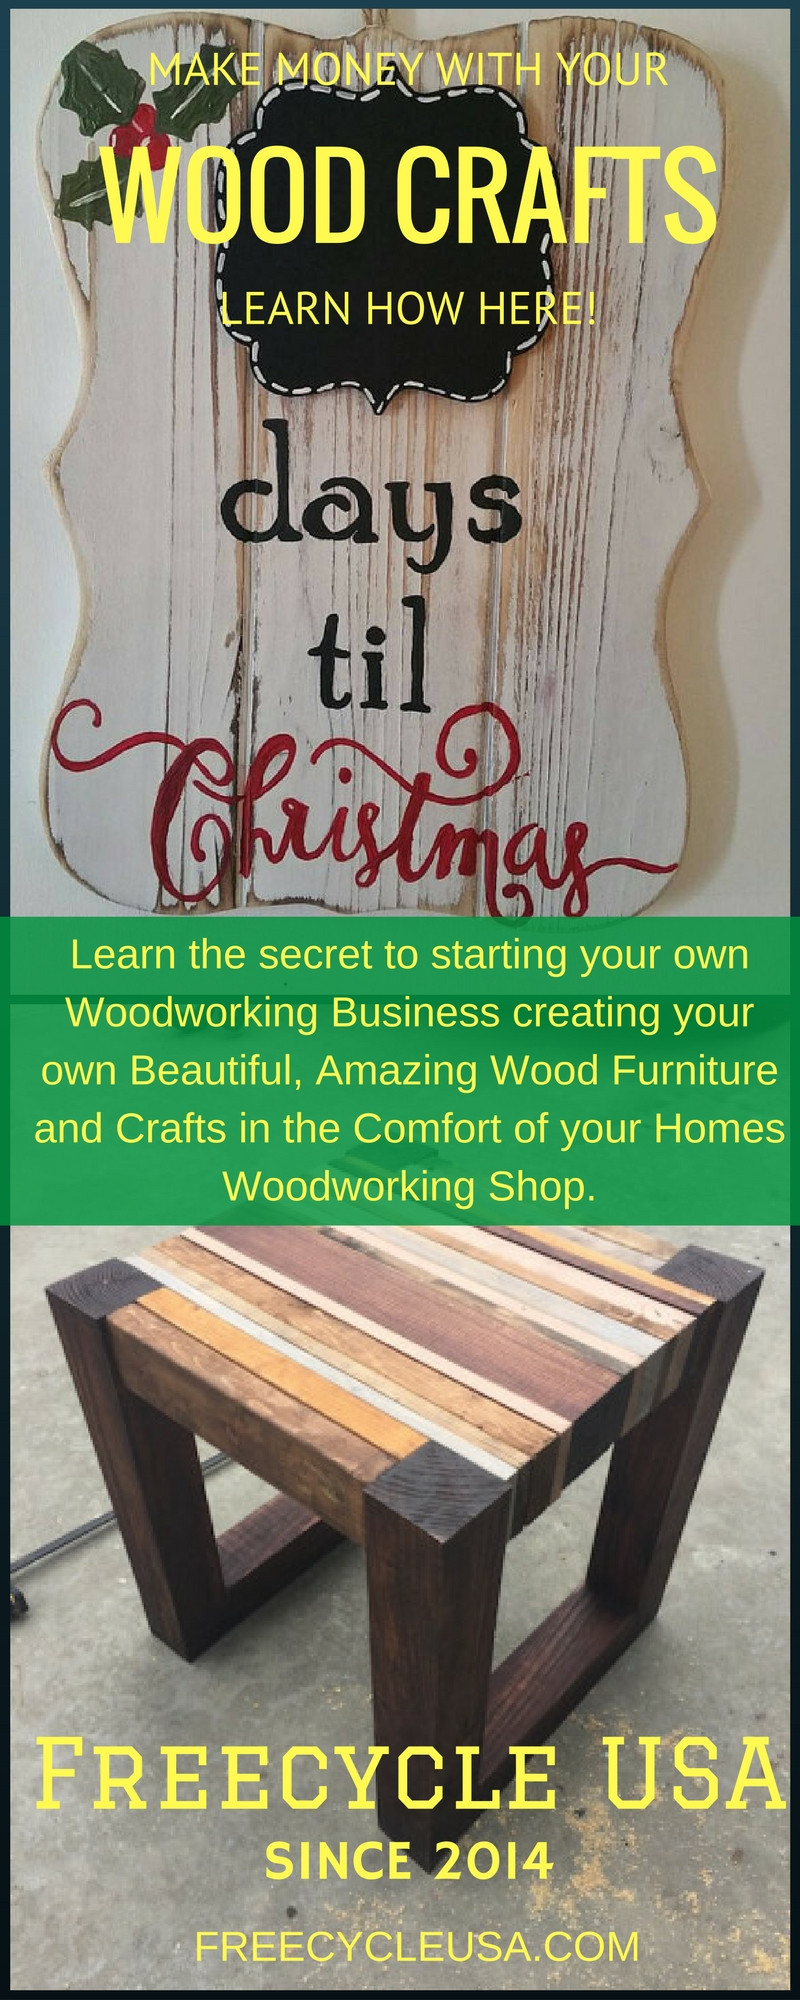 Wood Craft Ideas To Make Money  How To Make Easy Money With Your Wood Crafts FREECYCLE USA